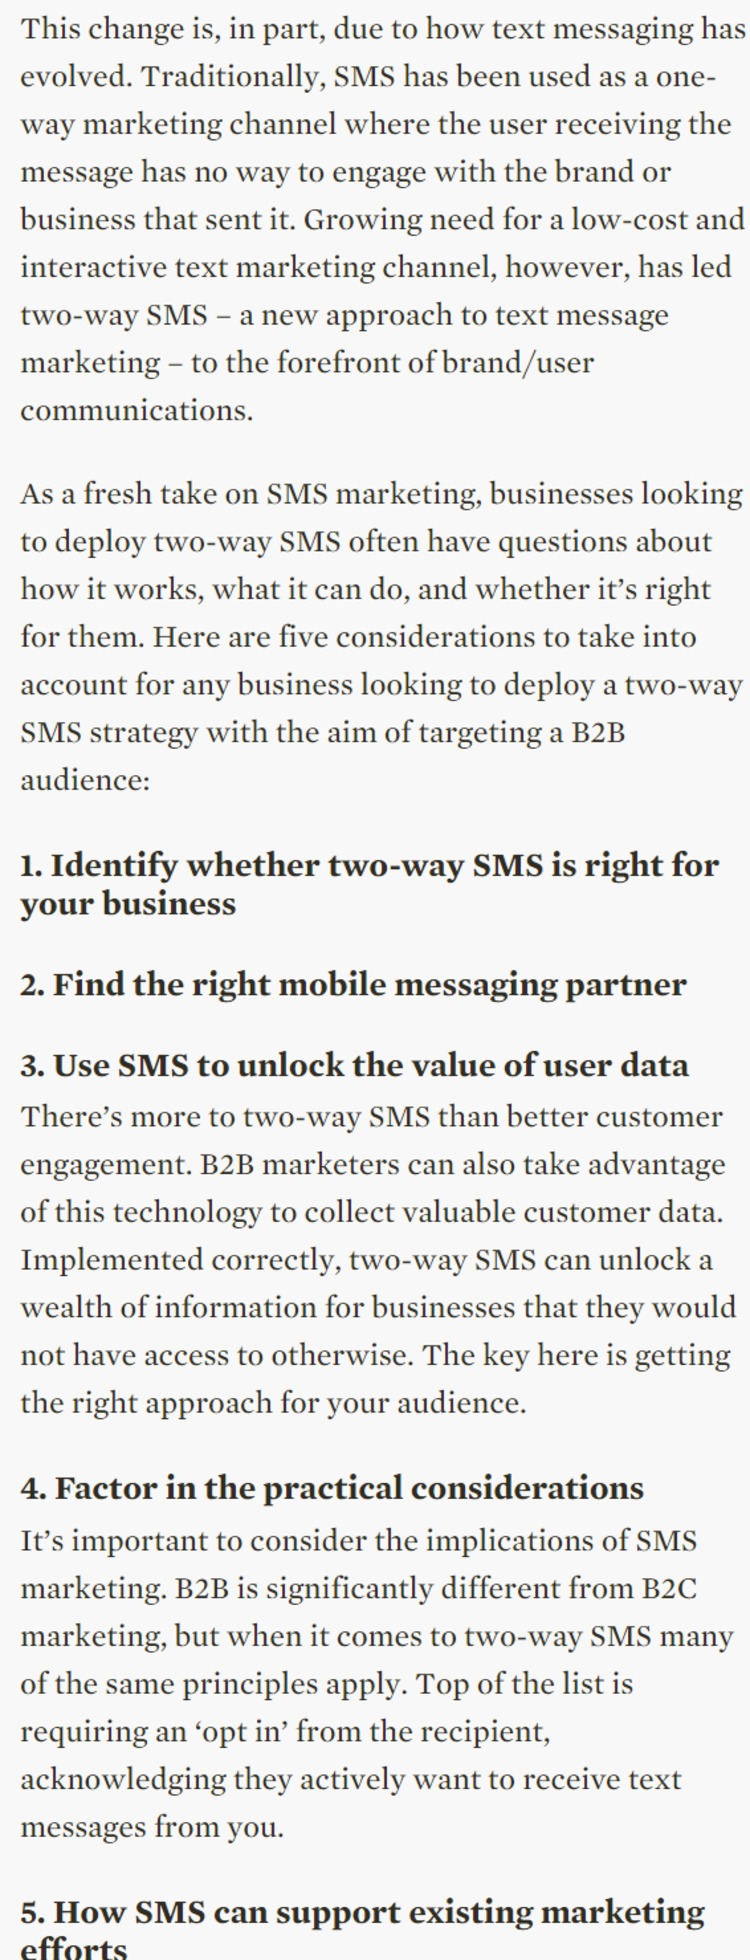 Better B2B marketing with two-way SMS - Fourth Source | The Marketing Technology Alert | Scoop.it